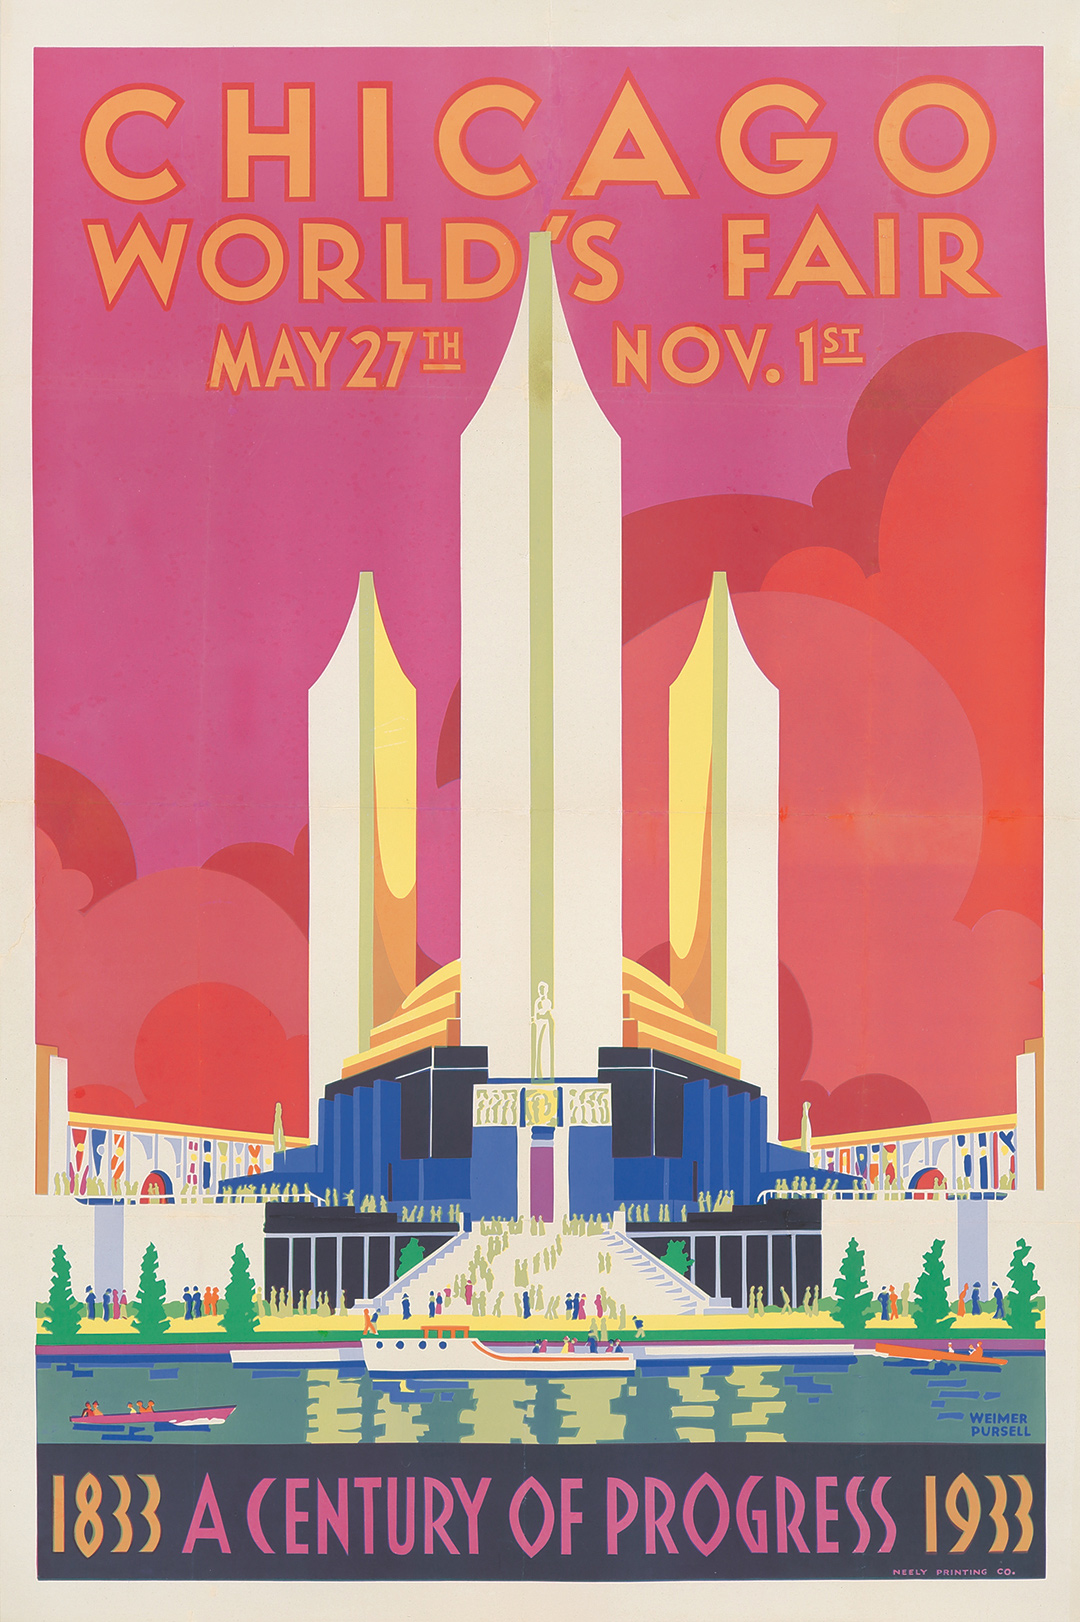 425. Pursell's 1933 Chicago World's Fair. ($1,680)